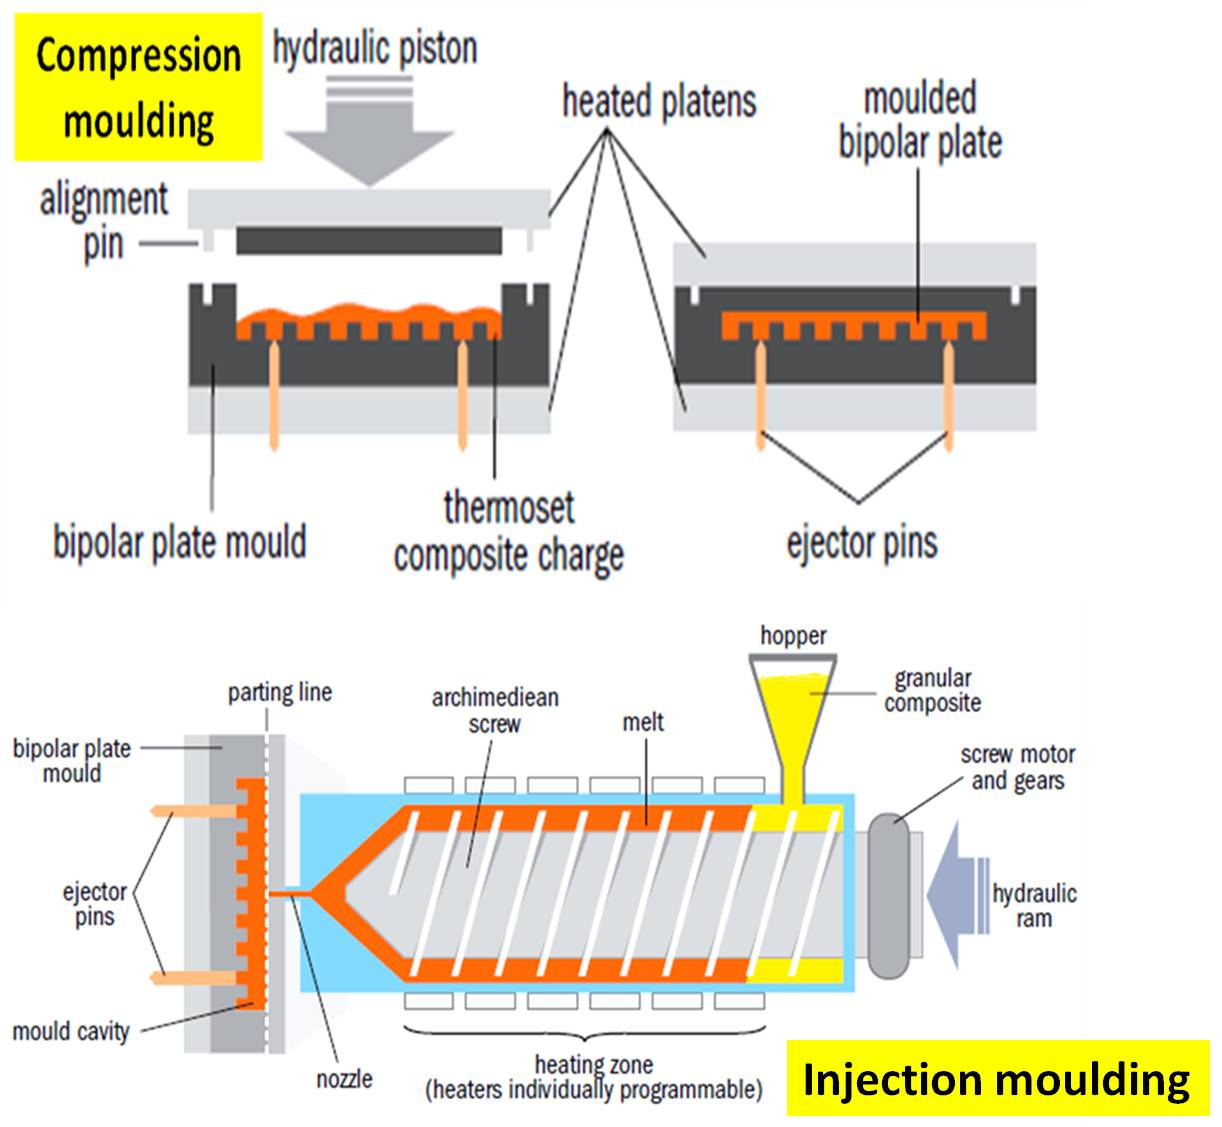 A Review Of Thermoplastic Composites For Bipolar Plate